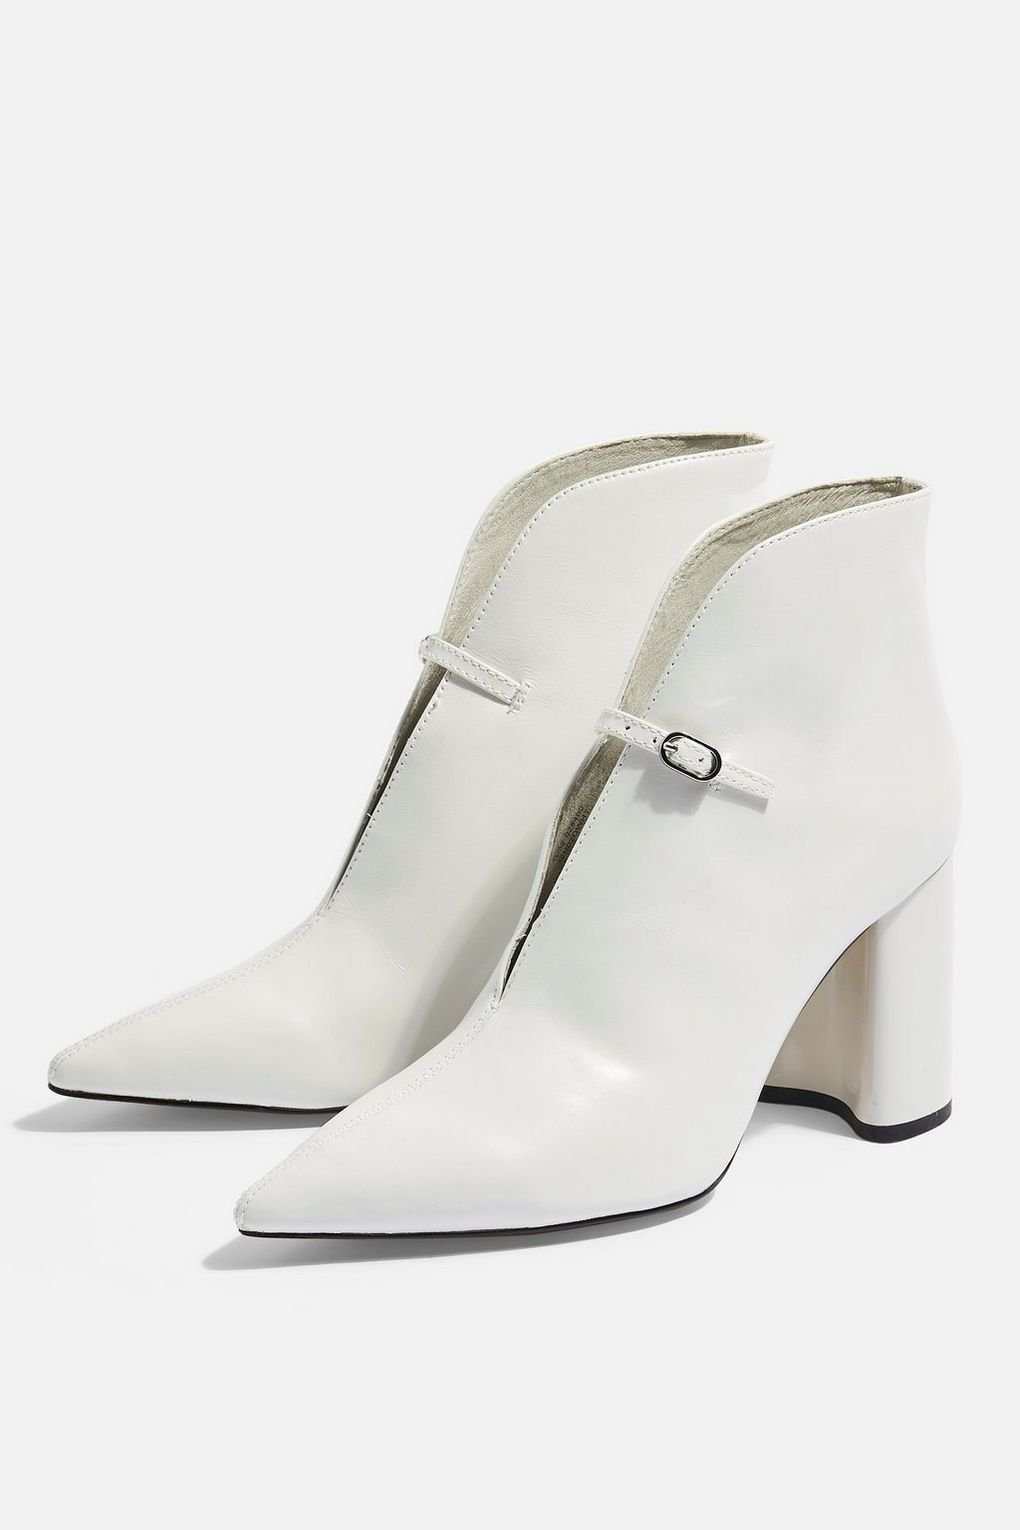 HALO High Ankle Boots - Boots - Shoes - Topshop USA